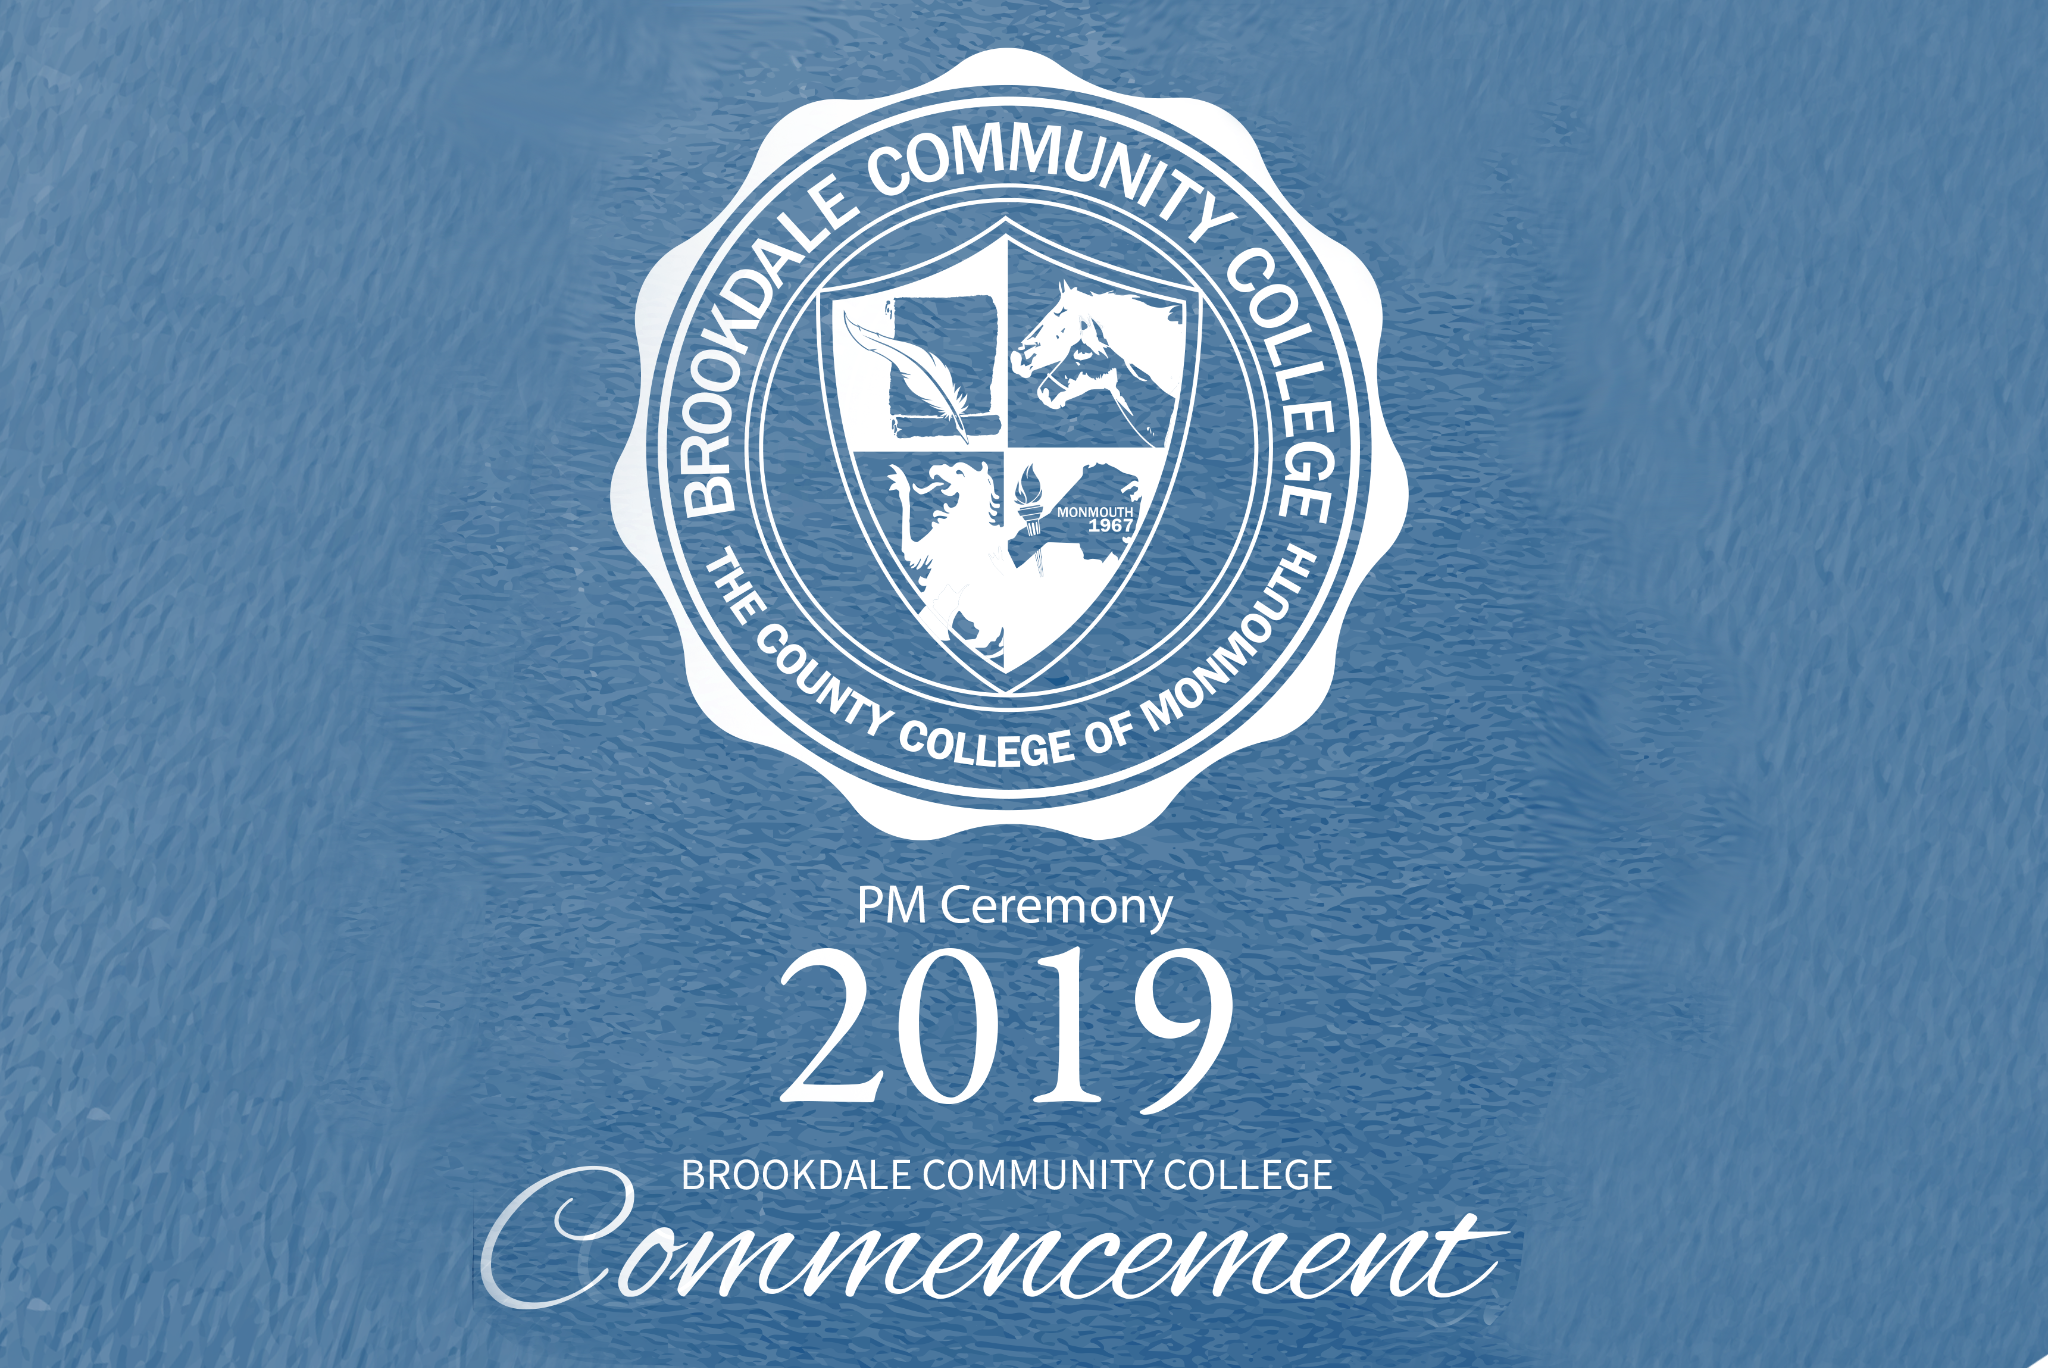 Brookdale Community College 2019 Commencement Ceremony PM